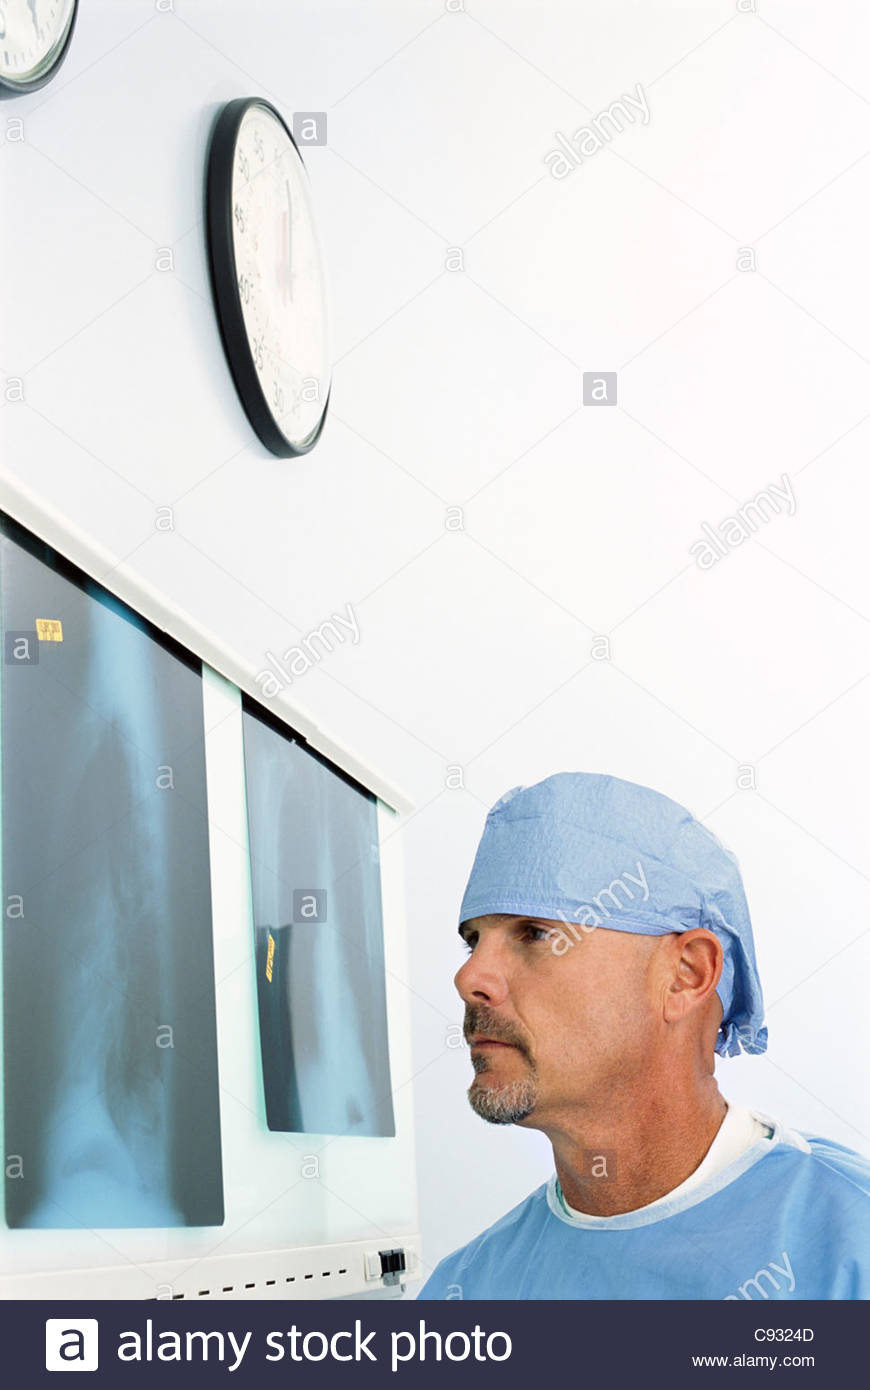 Surgeon examining x-rays - Stock Image